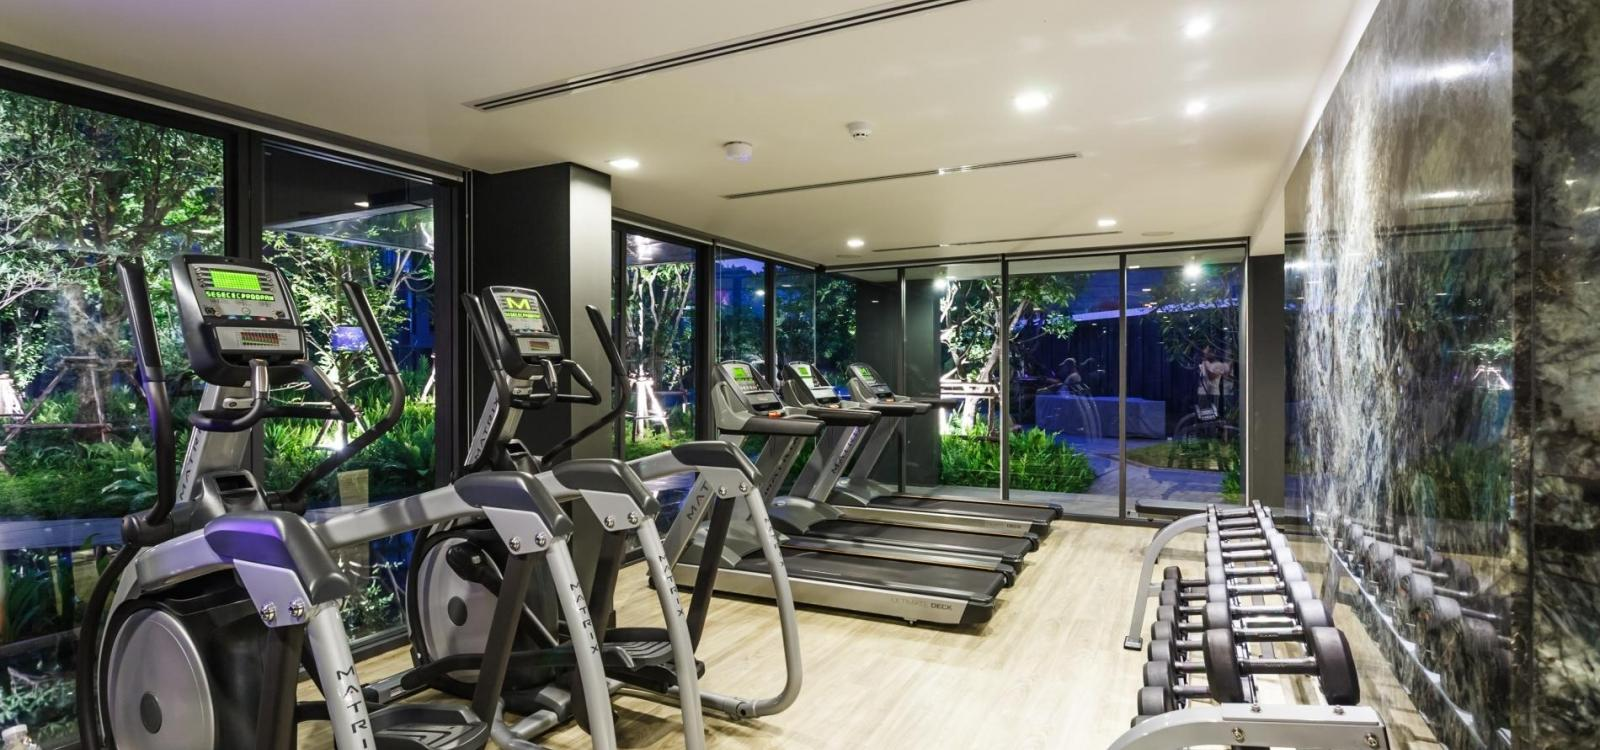 D263 - Mountain view 7th floor studio with pool & gym, central Patong